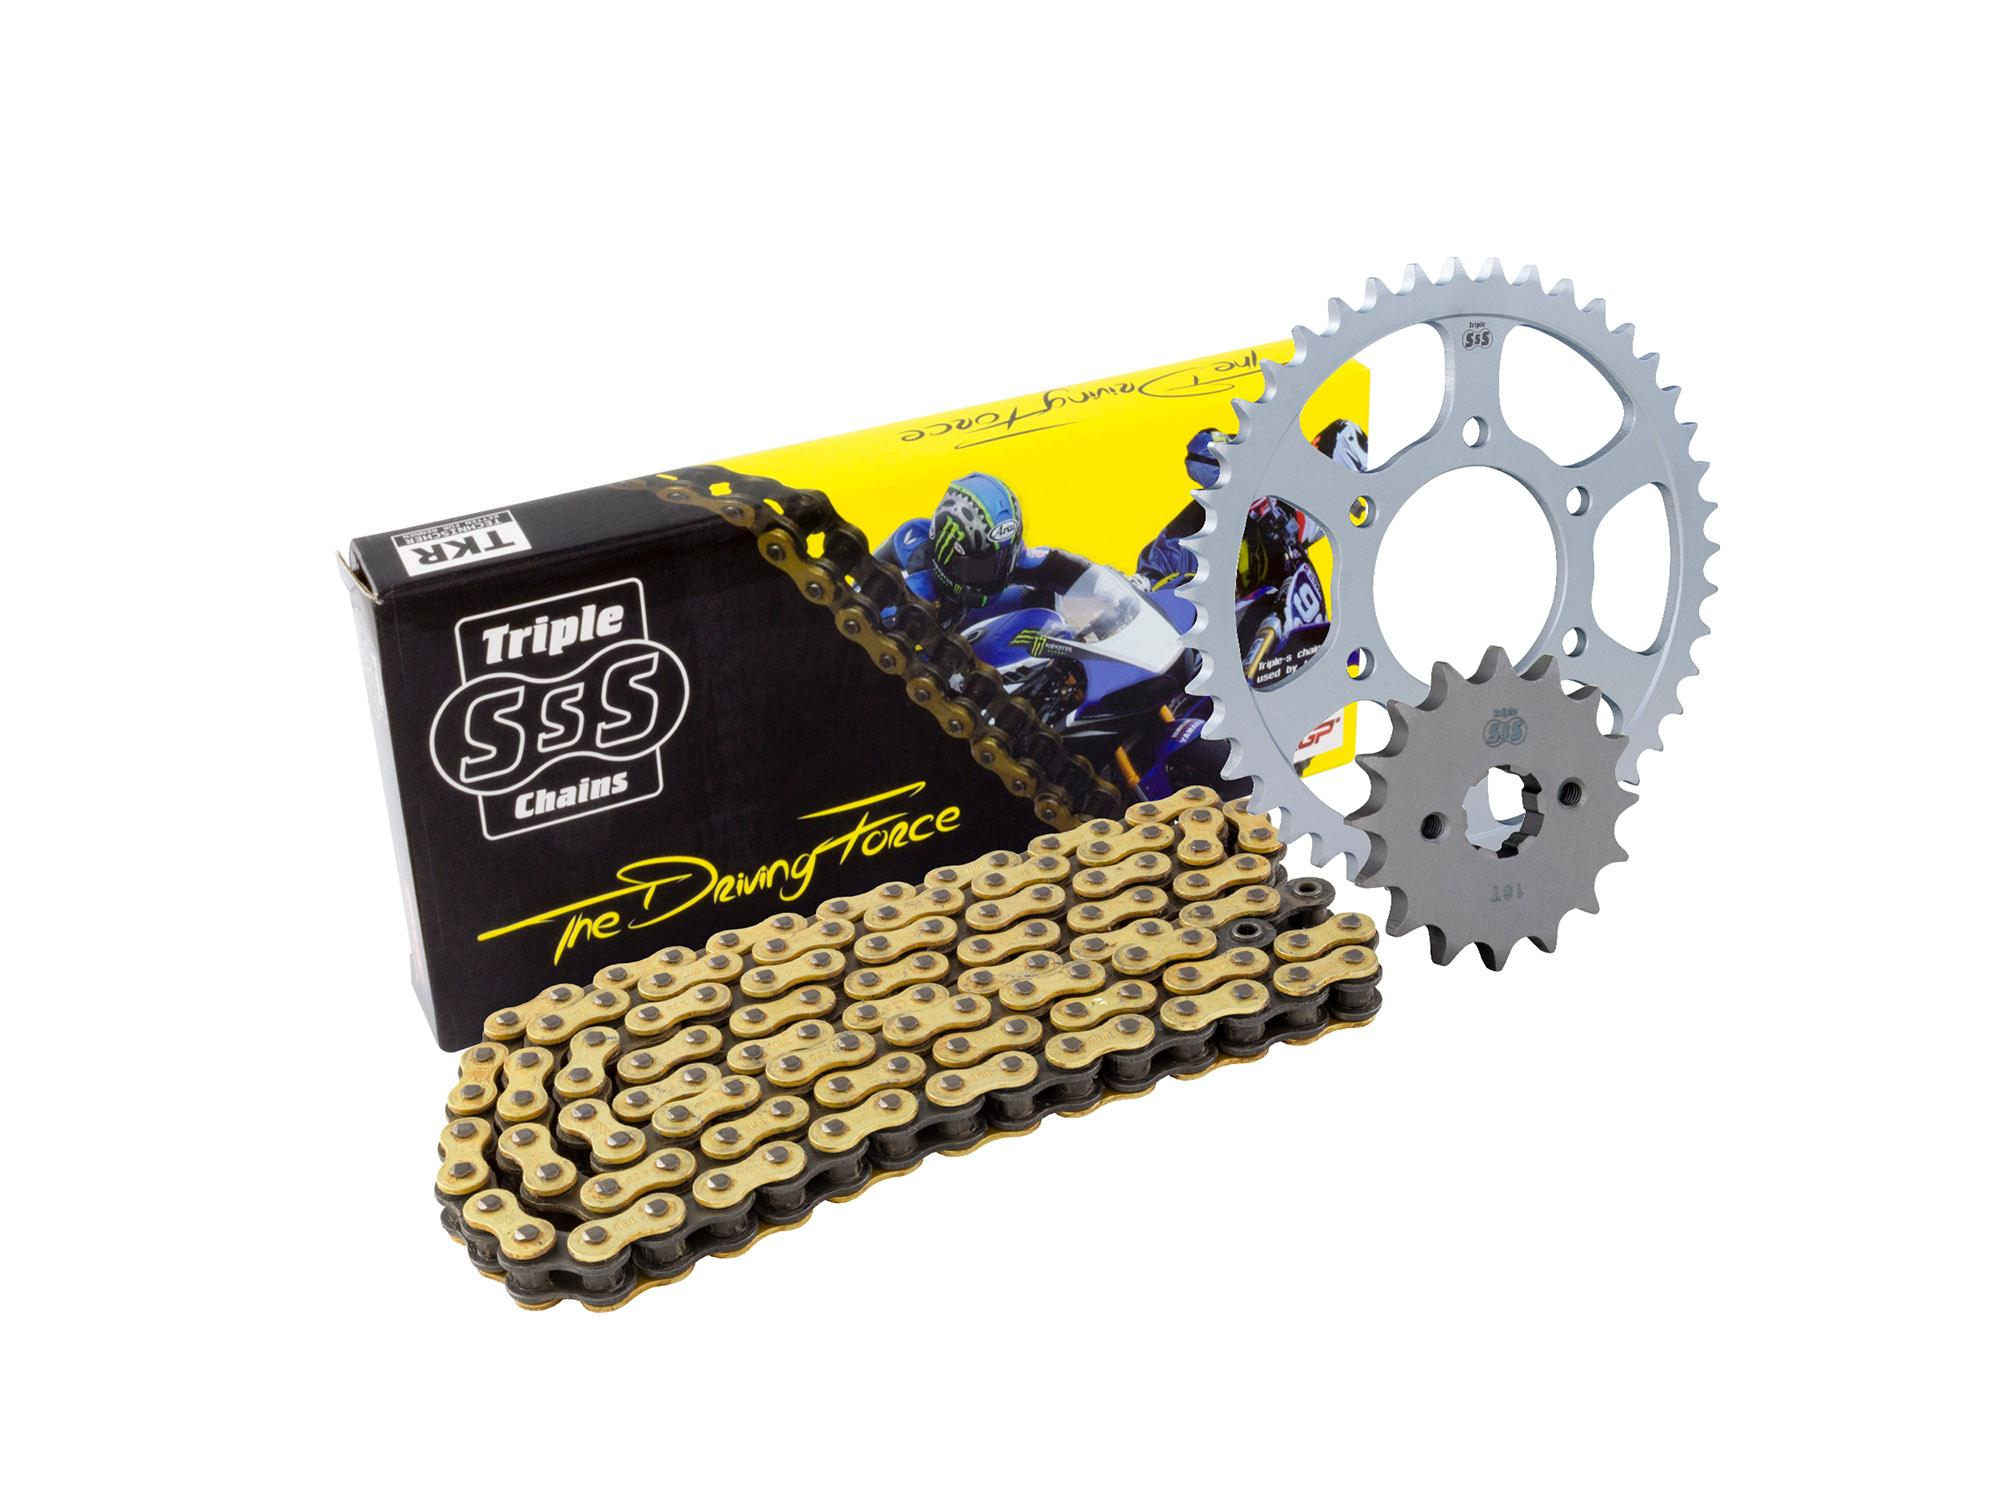 Honda CBR600 FS-1 / FS-2 Sport 01-02 Chain & Sprocket Kit: 16T Front, 45T Rear, HD O-Ring Gold Chain 525H 112Link